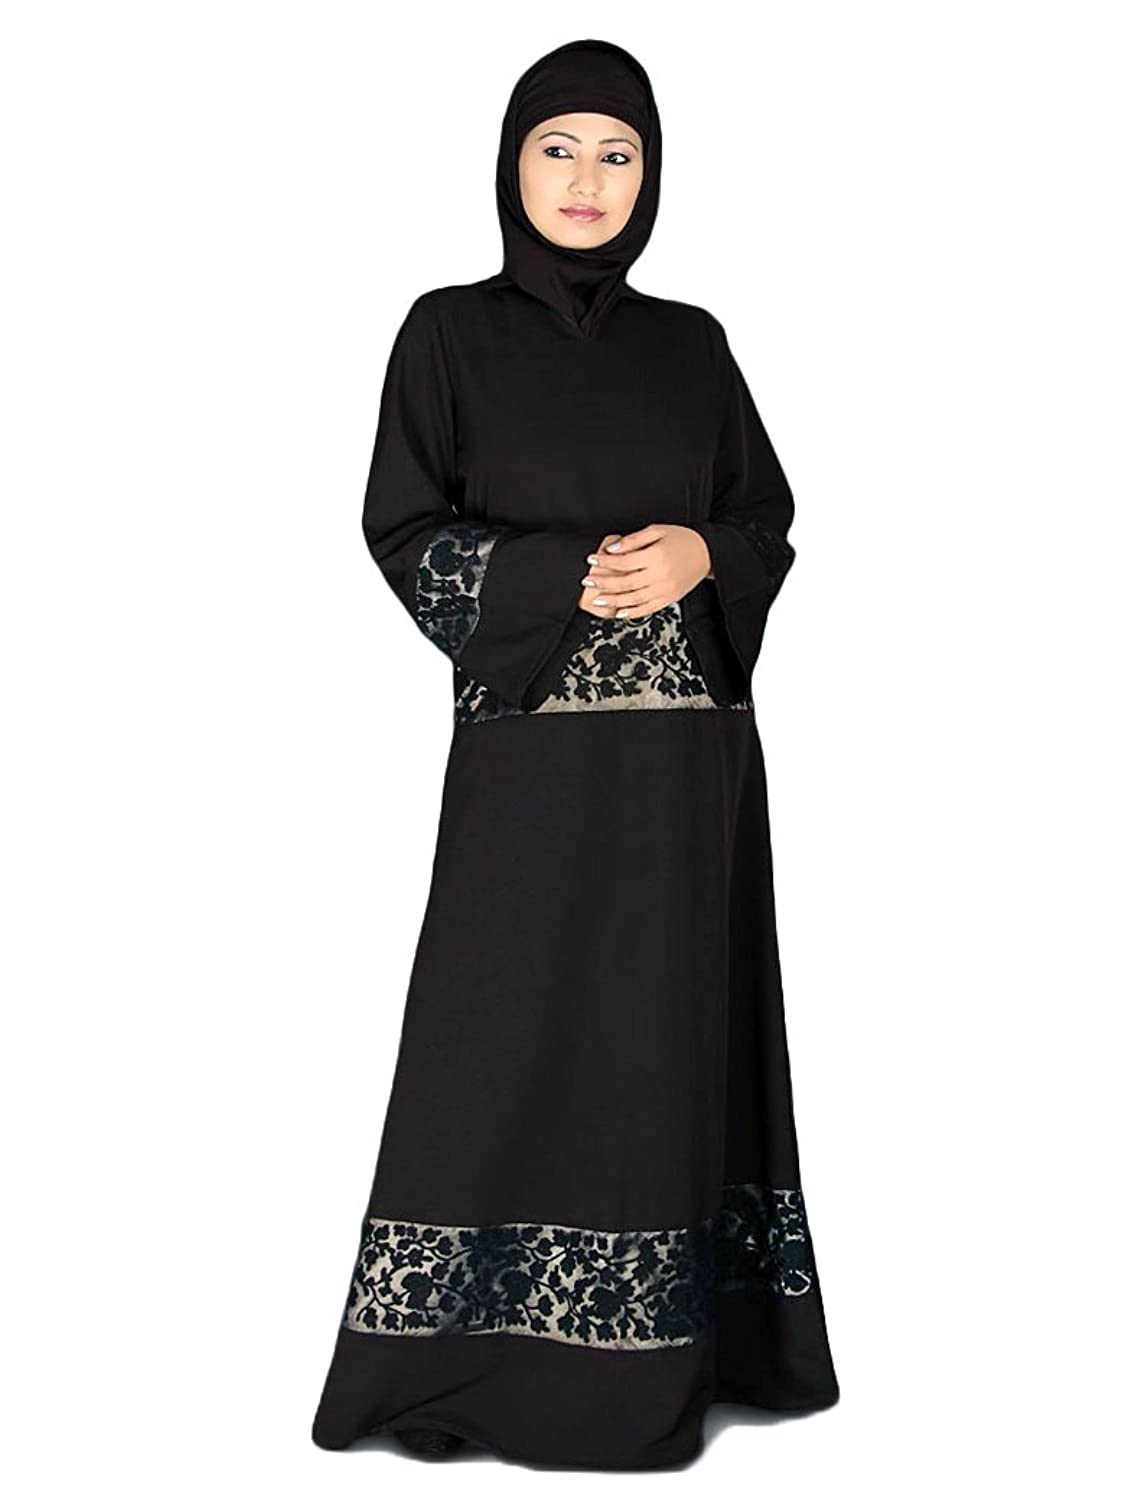 mybatua schwarz gestickte muslimische traditionelle eid party tragen frauen abaya burqa ay 017. Black Bedroom Furniture Sets. Home Design Ideas